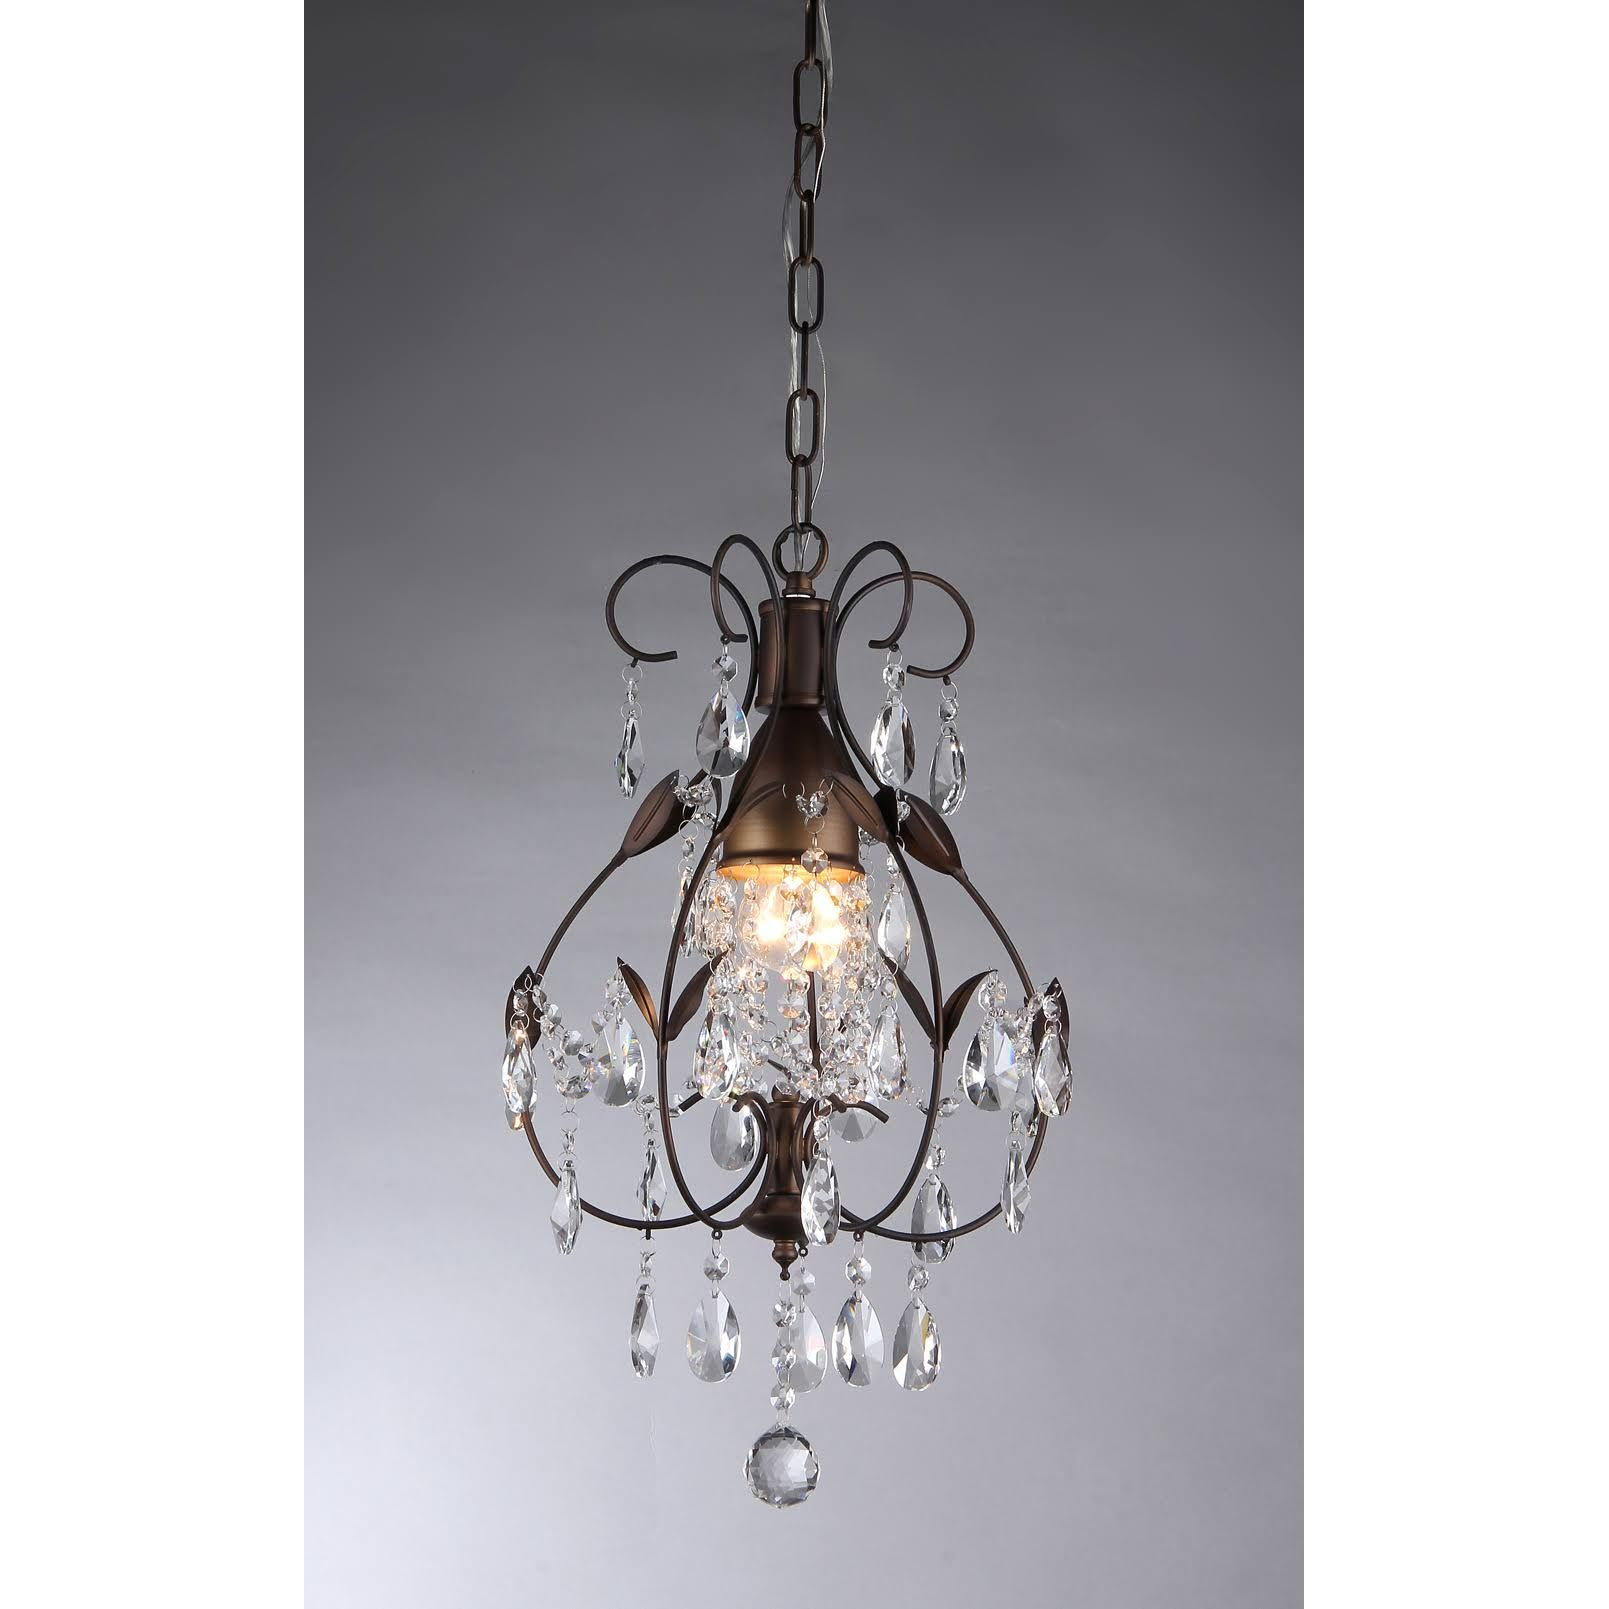 Over The Bathtub? Warehouse Of Tiffany RL8052 Maleficent Chandelier